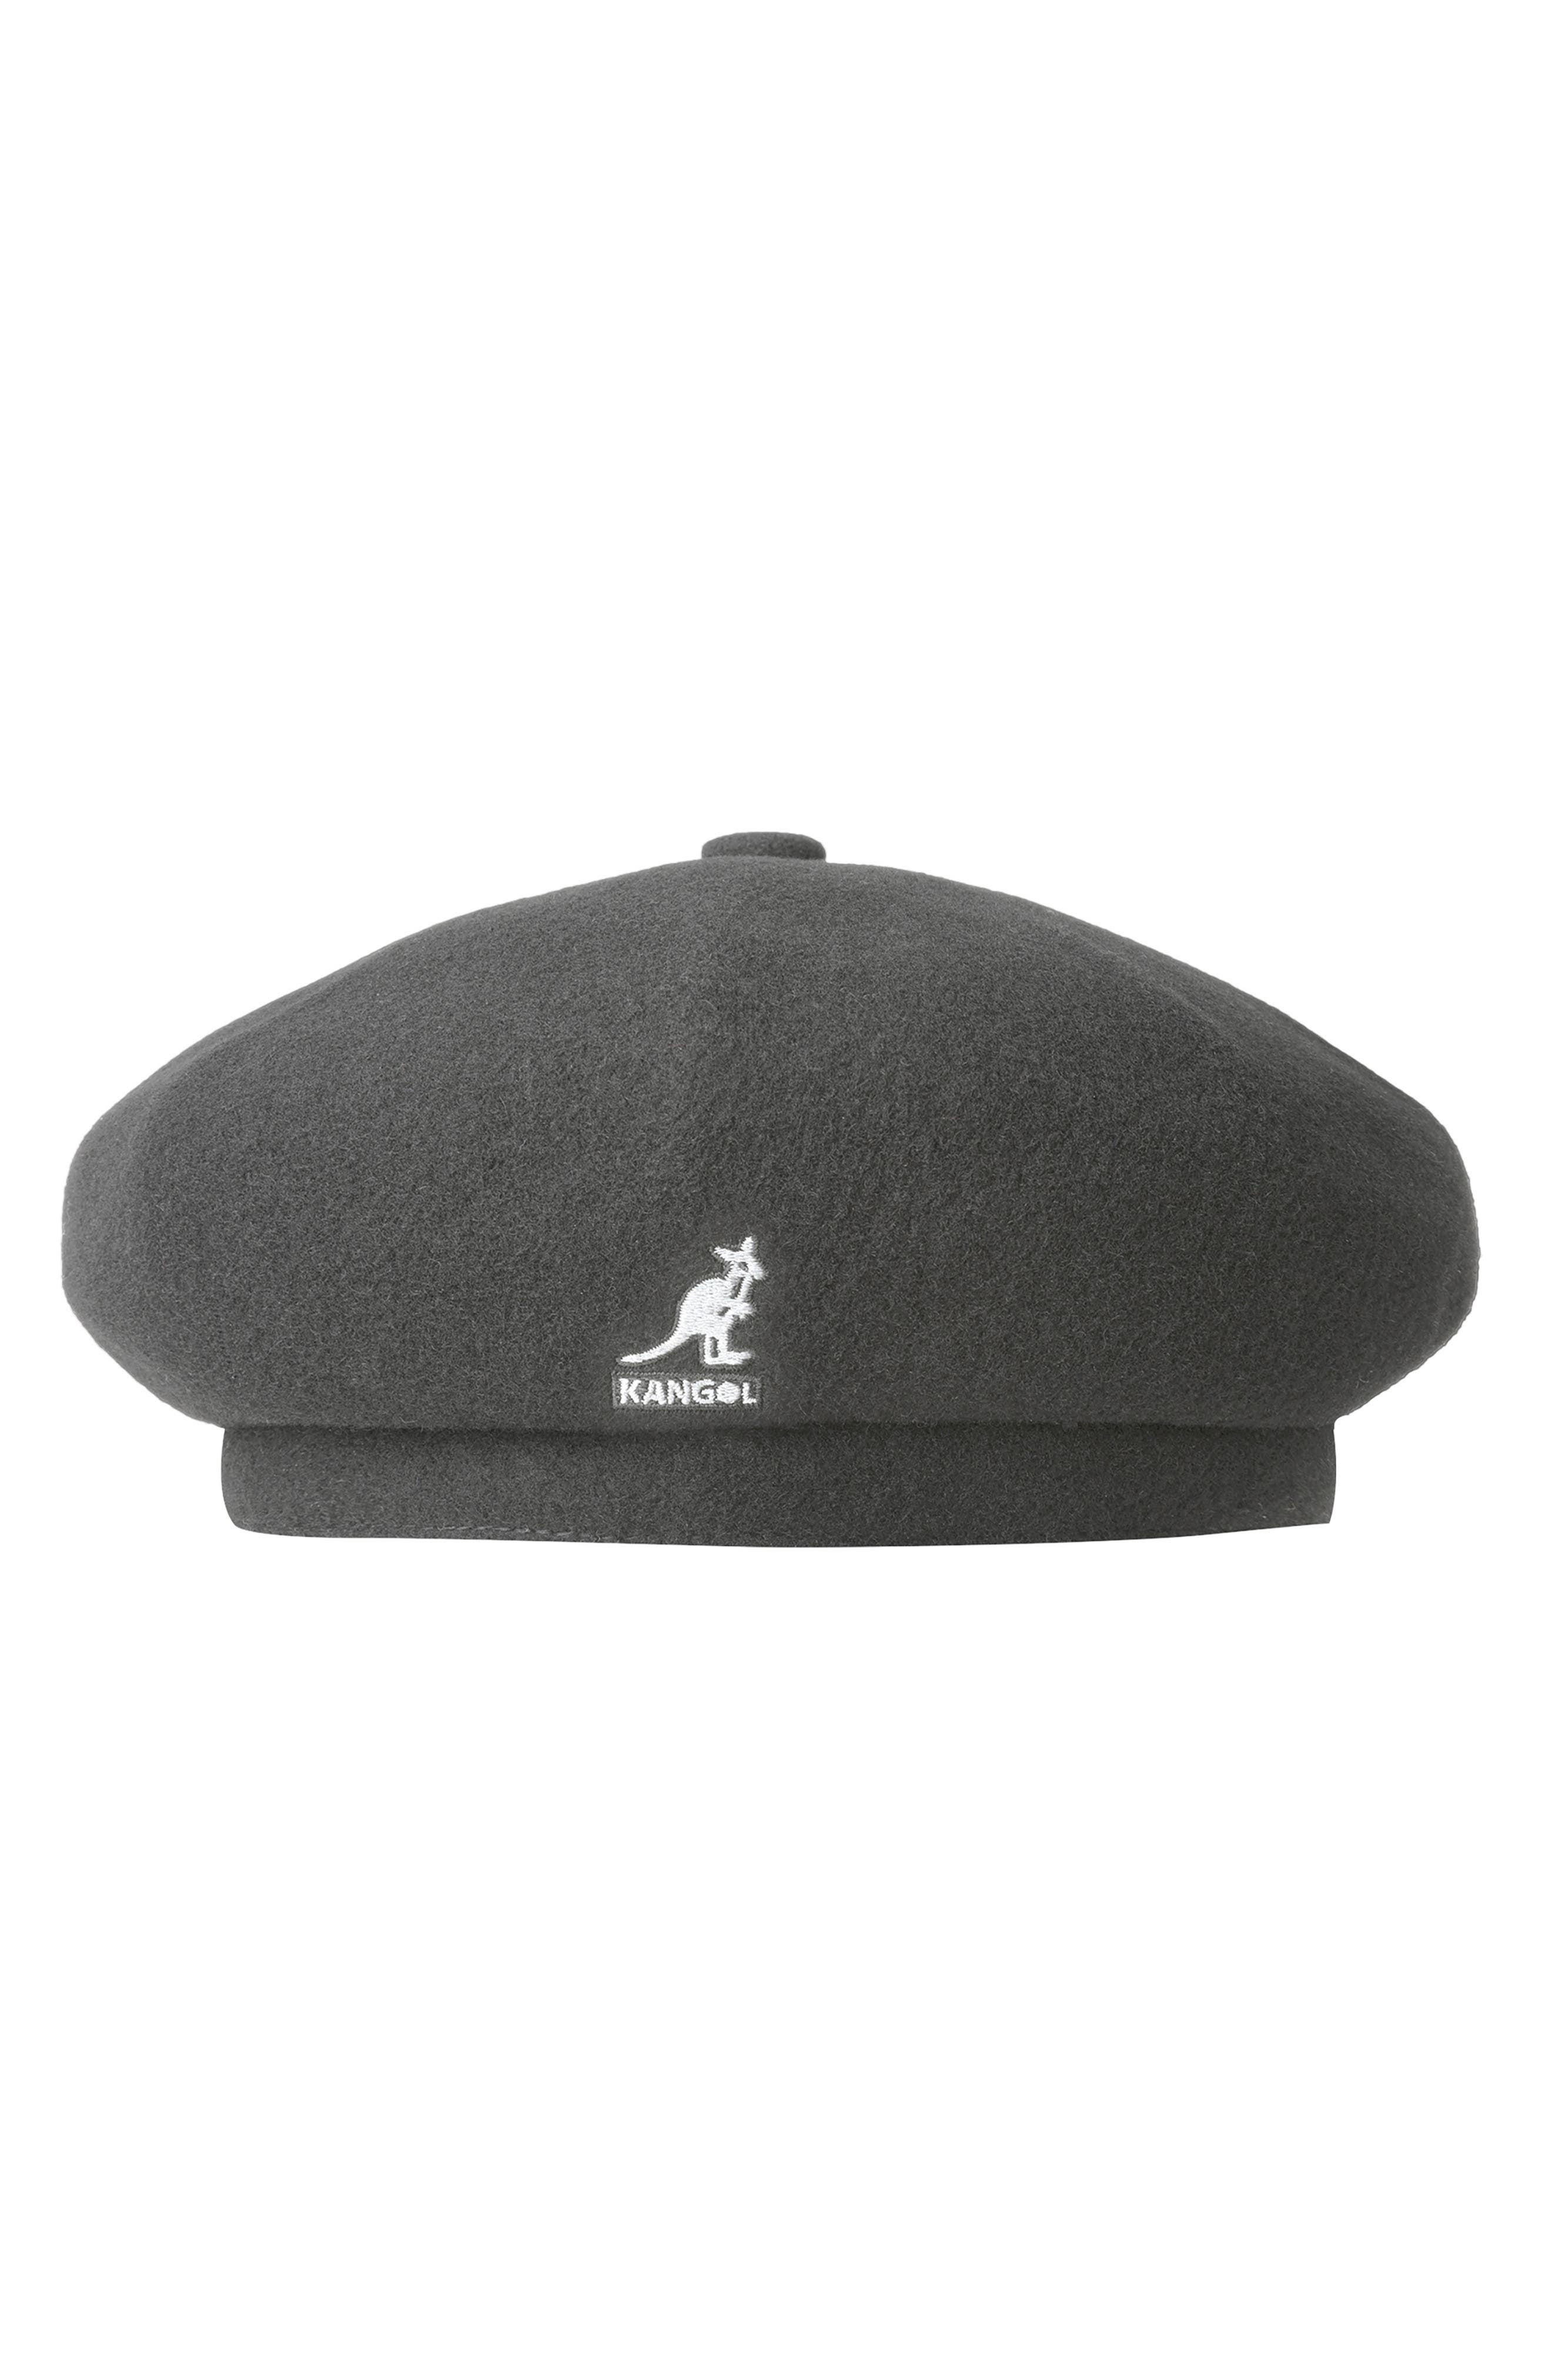 Always a stylish accessory, this wool-blend beret adds warmth as well as a certain panache. Style Name: Kangol Jax Beret. Style Number: 5738293 1. Available in stores.